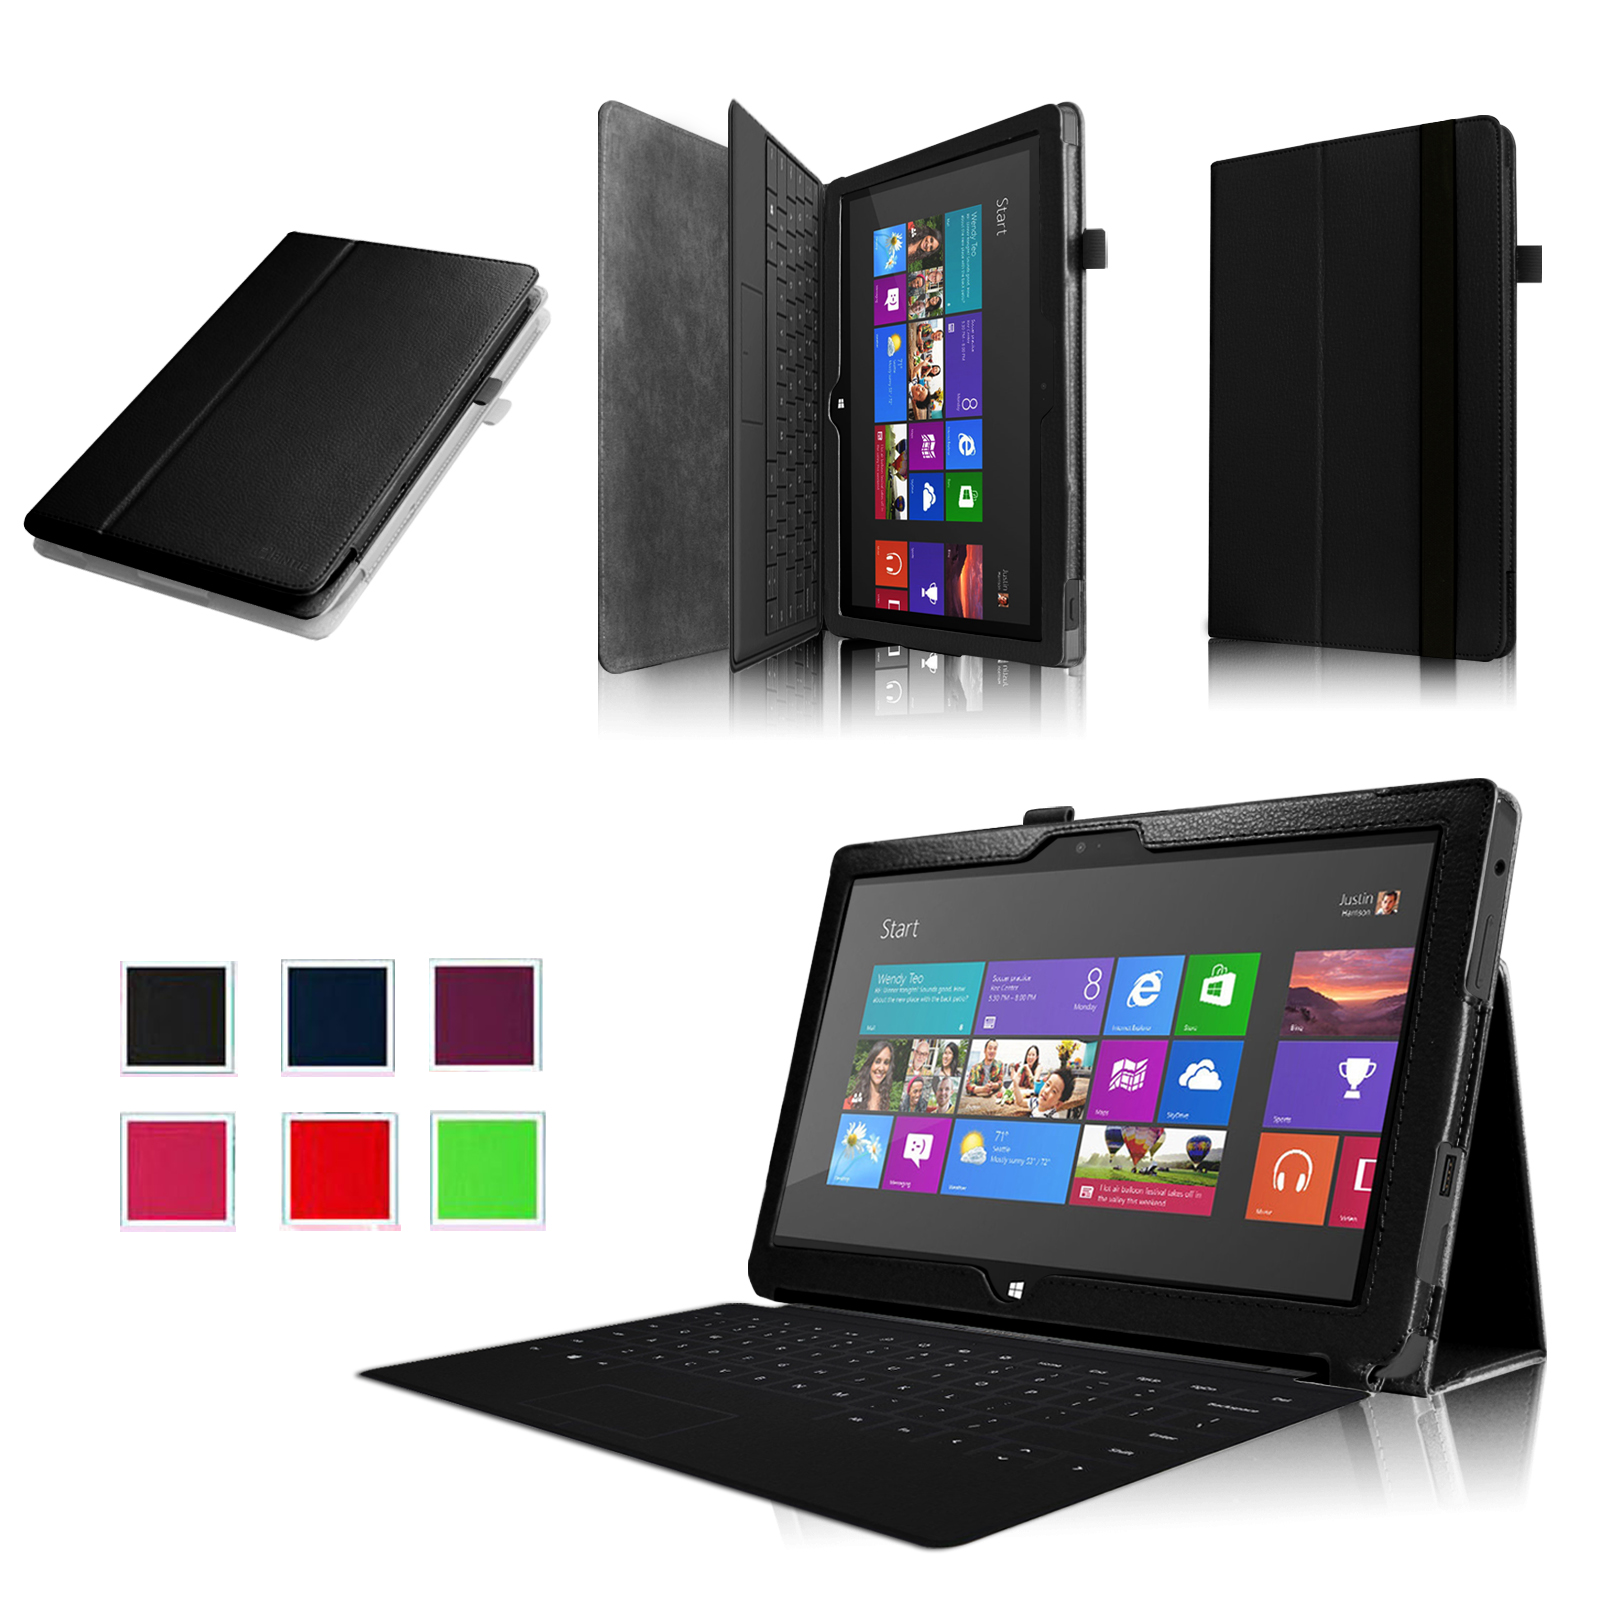 Fintie Microsoft Surface RT / Surface 2 10.6 inch Tablet Folio Case - Slim Fit PU Leather Stand Cover, Black